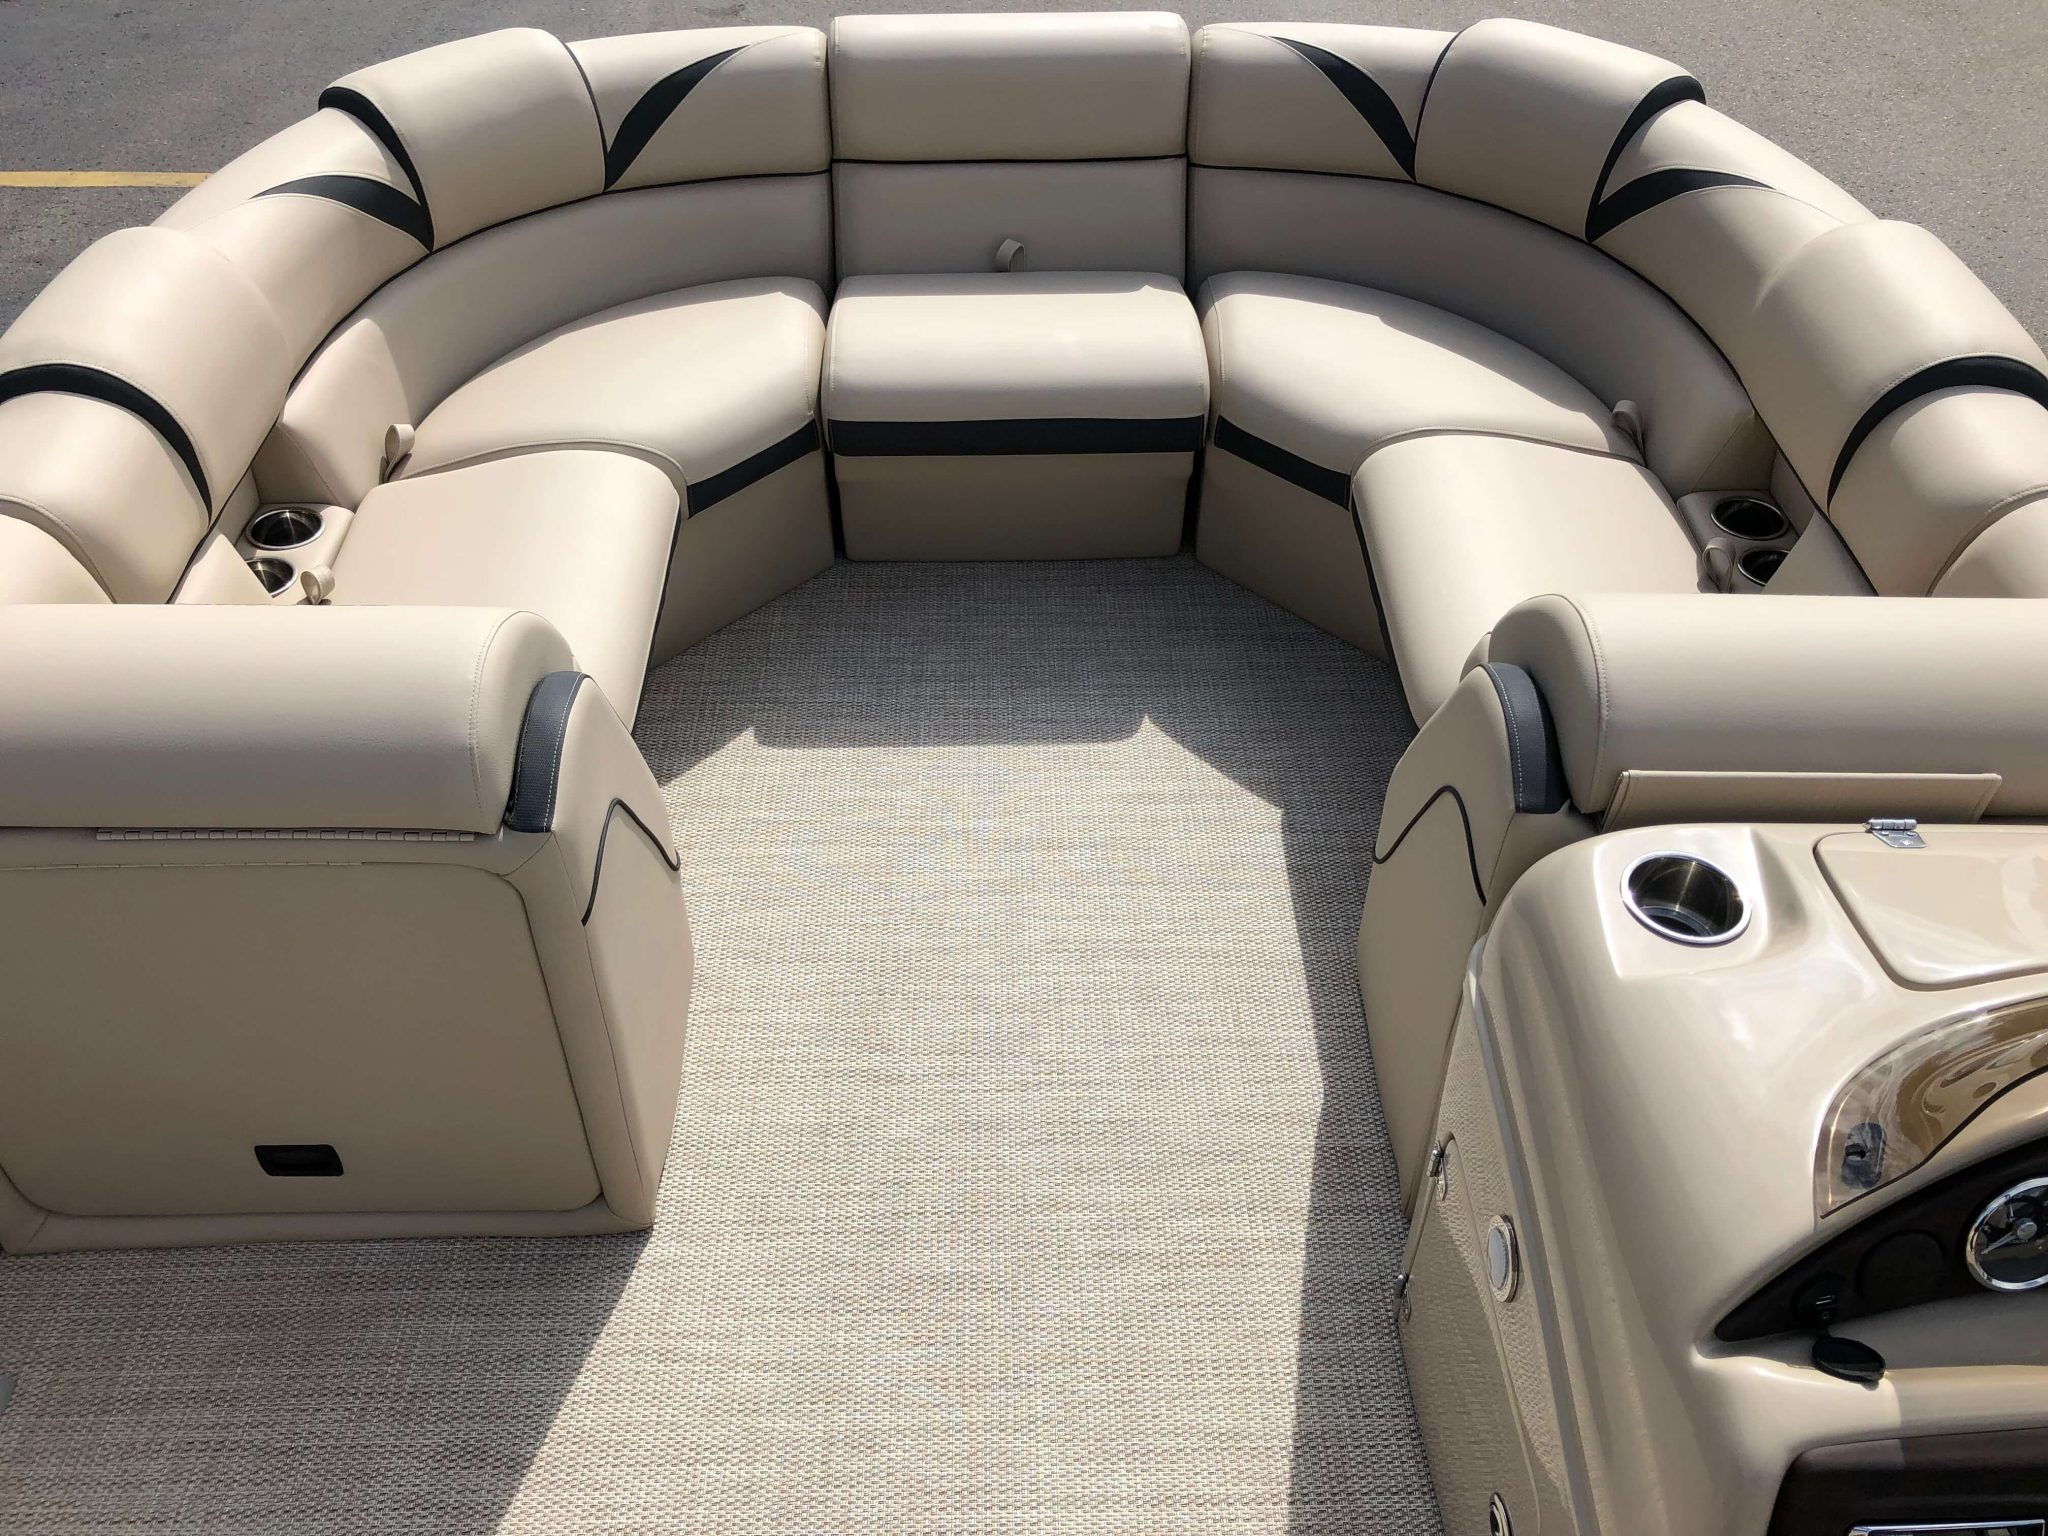 2019 Berkshire 23RFX STS Pontoon Boat Layout 3